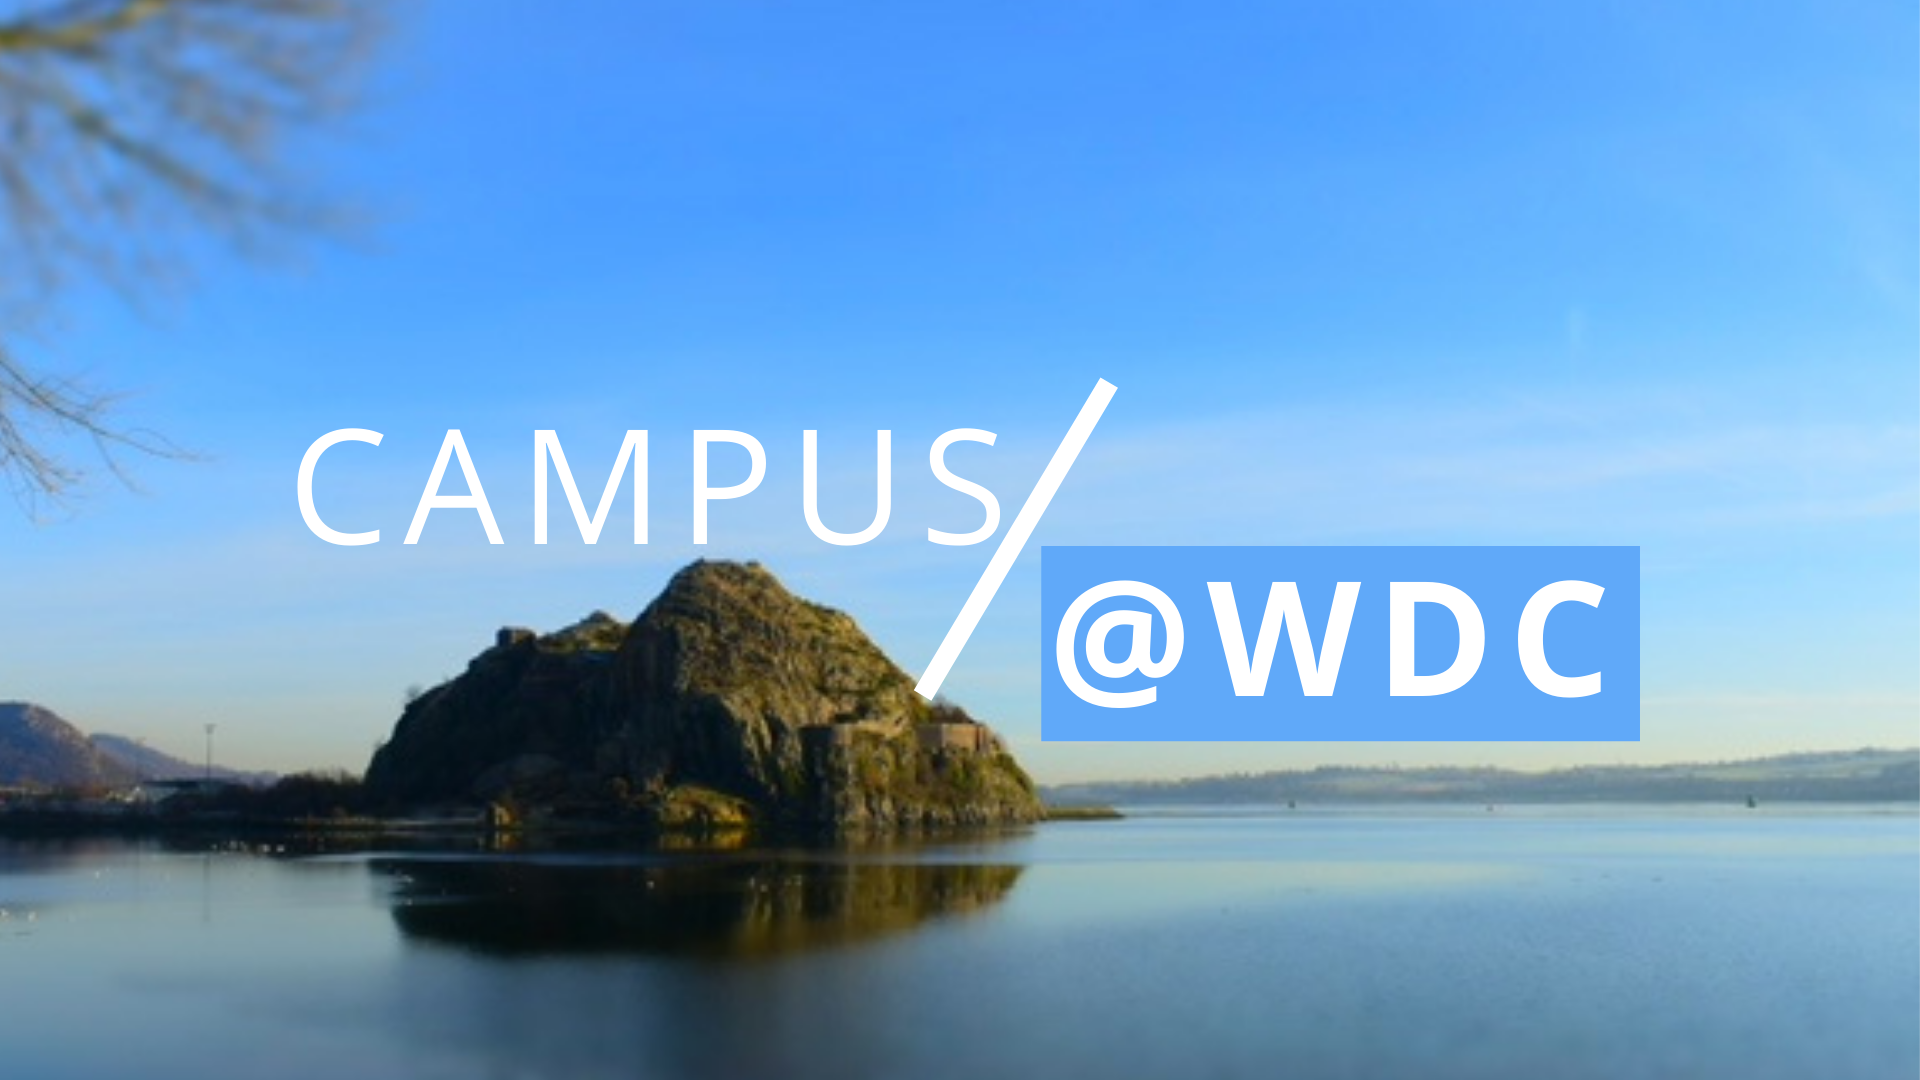 Image of Campus@WDC logo